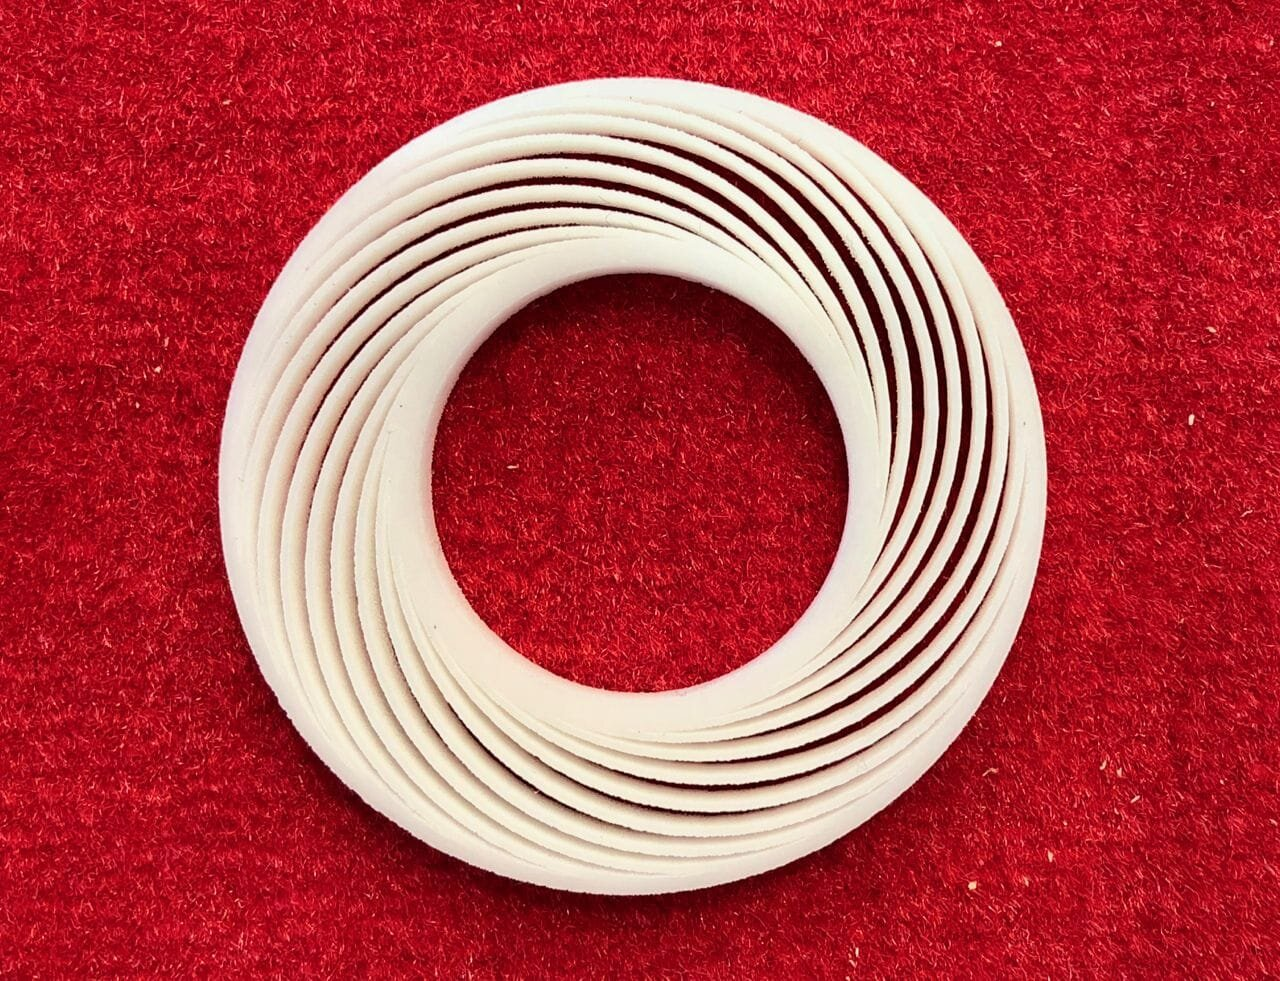 Research May Lead to New Types of Ceramic 3D Printers